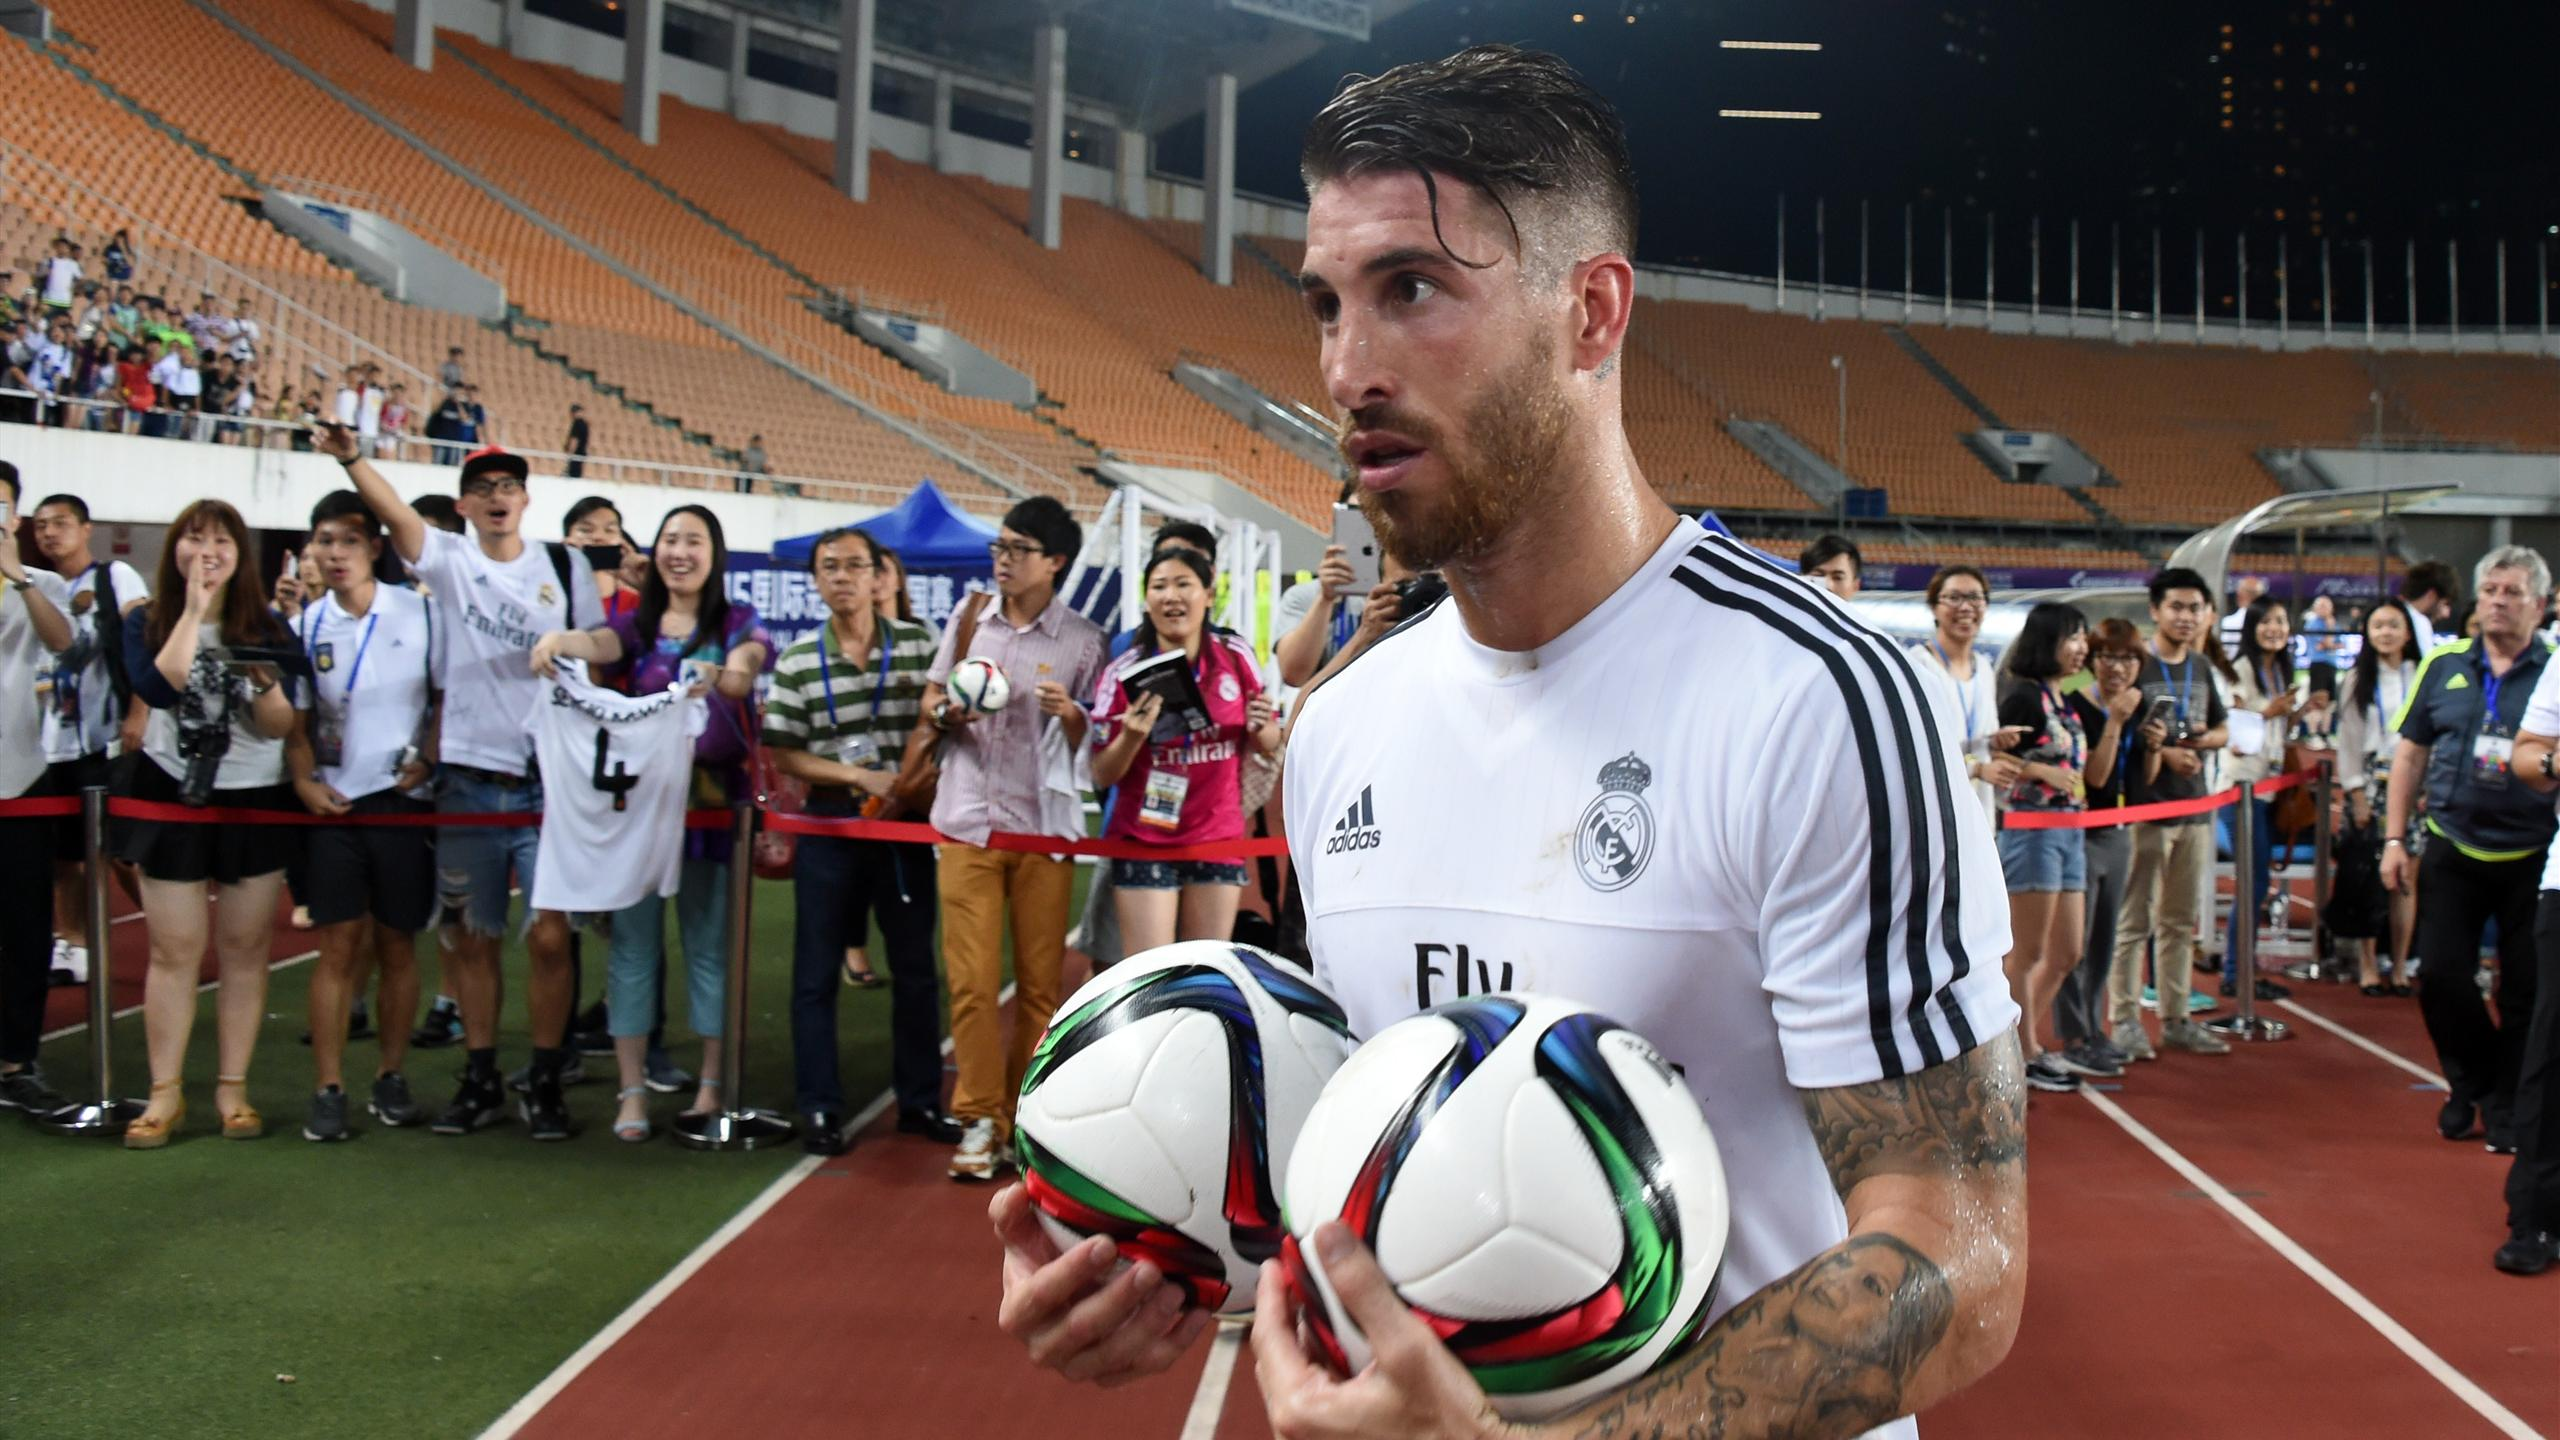 Real Madrid's defender Sergio Ramos holds two ball after a training session on the eve of the International Champions Cup football match between Inter Milan and Real Madrid in Guagnzhou on July 26, 2015.